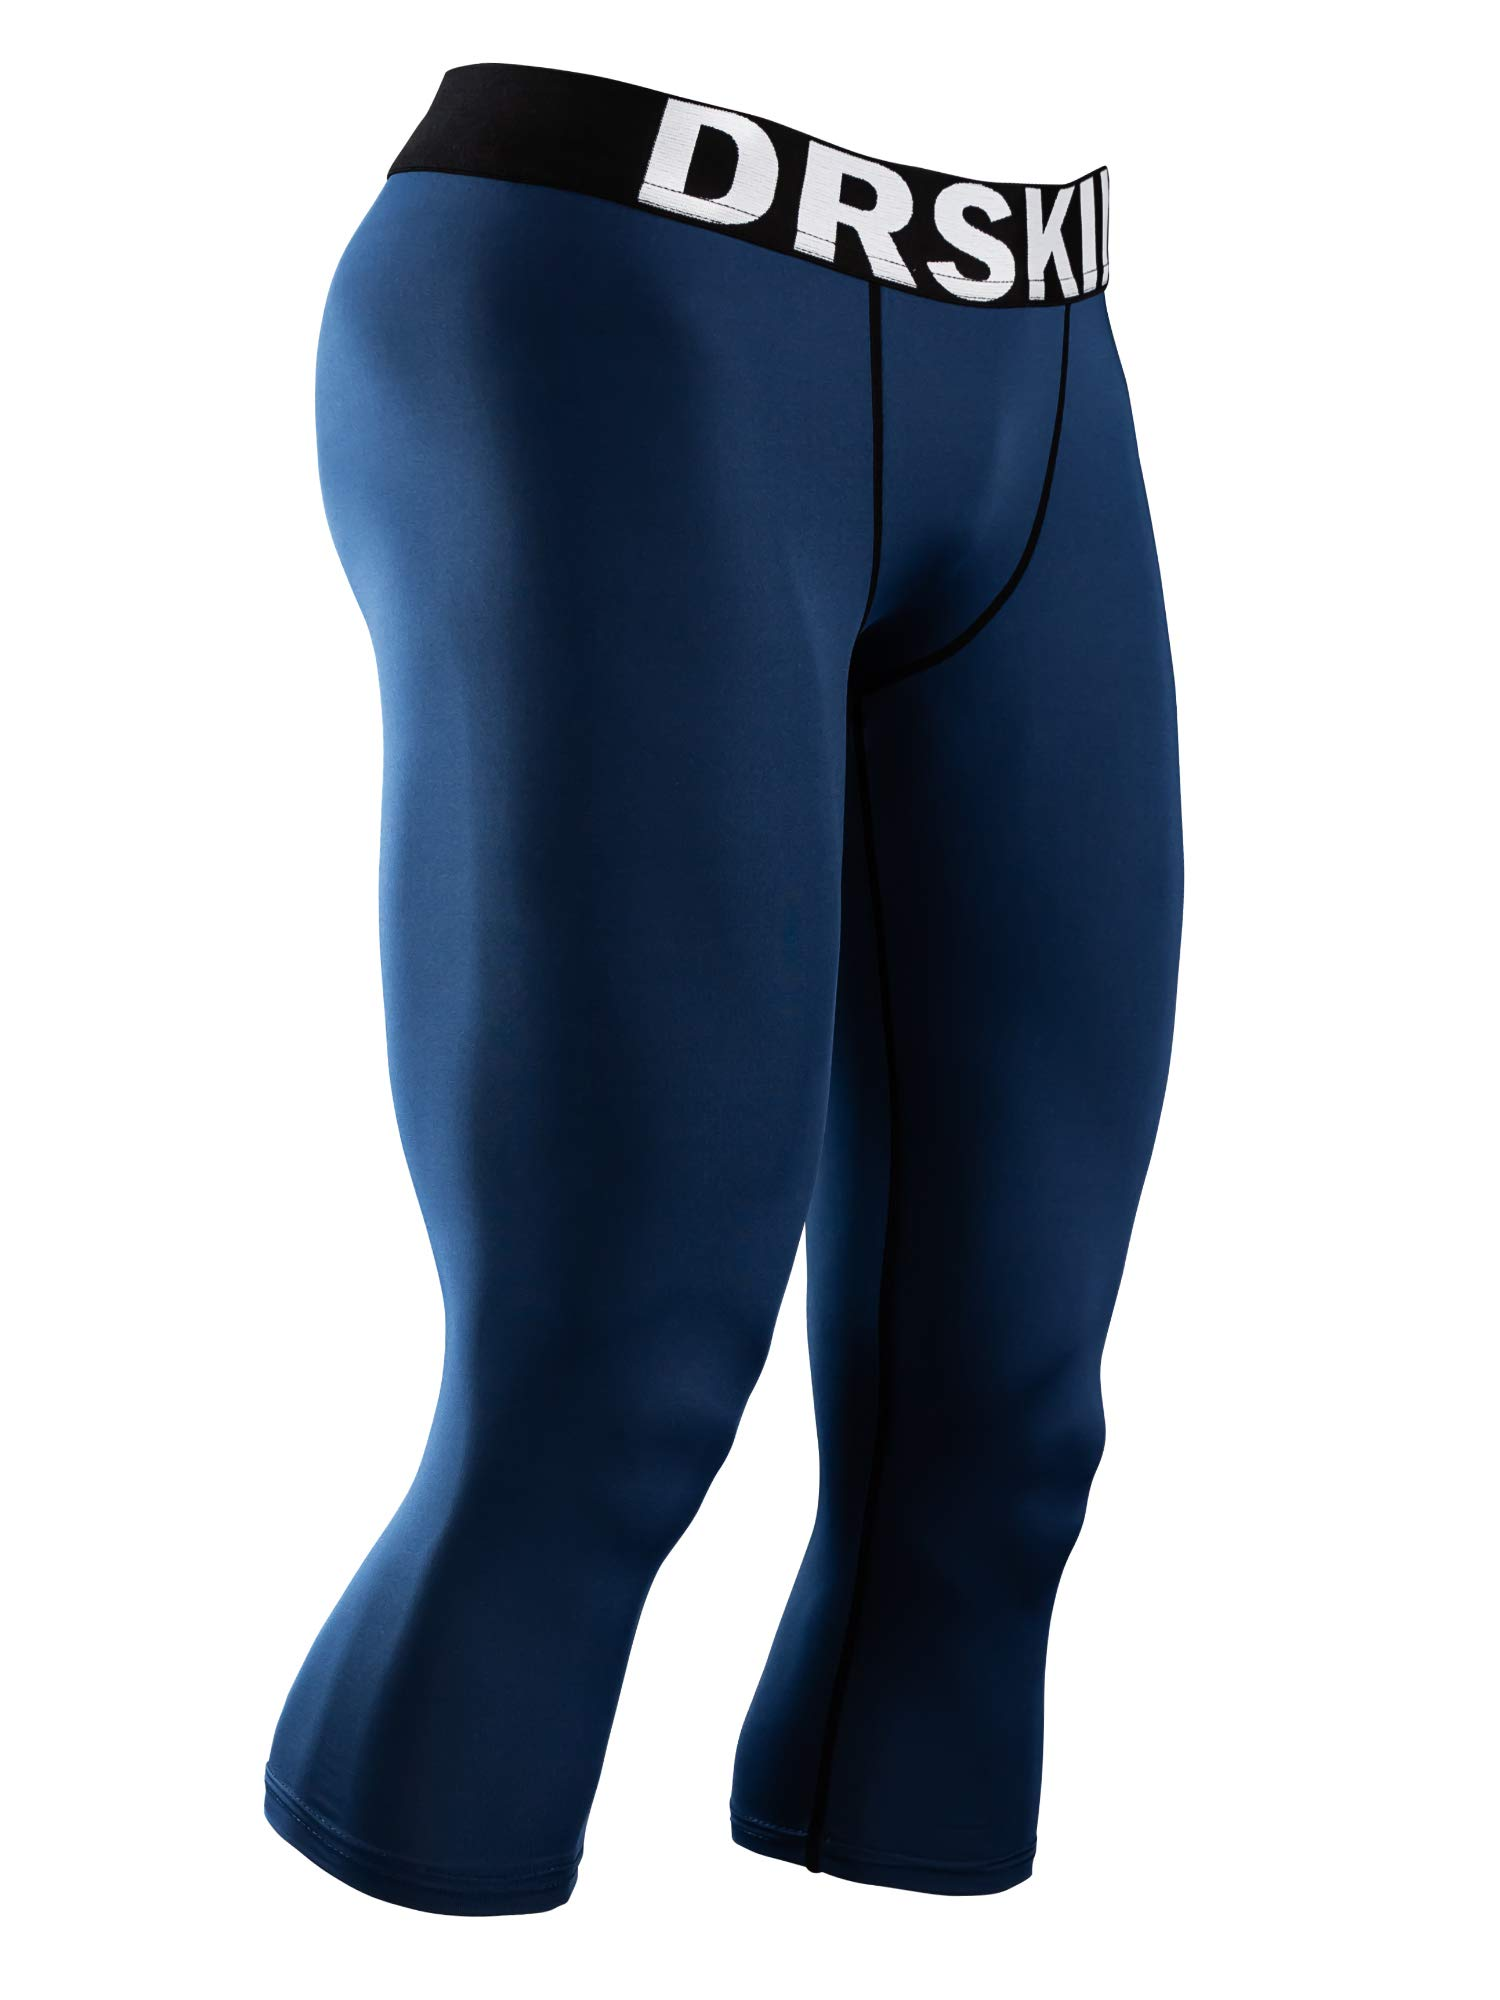 DRSKIN Men's 3/4 Compression Tight Pants Base Under Layer Running Shorts Warm Cool Dry (Line NA803, S) by DRSKIN